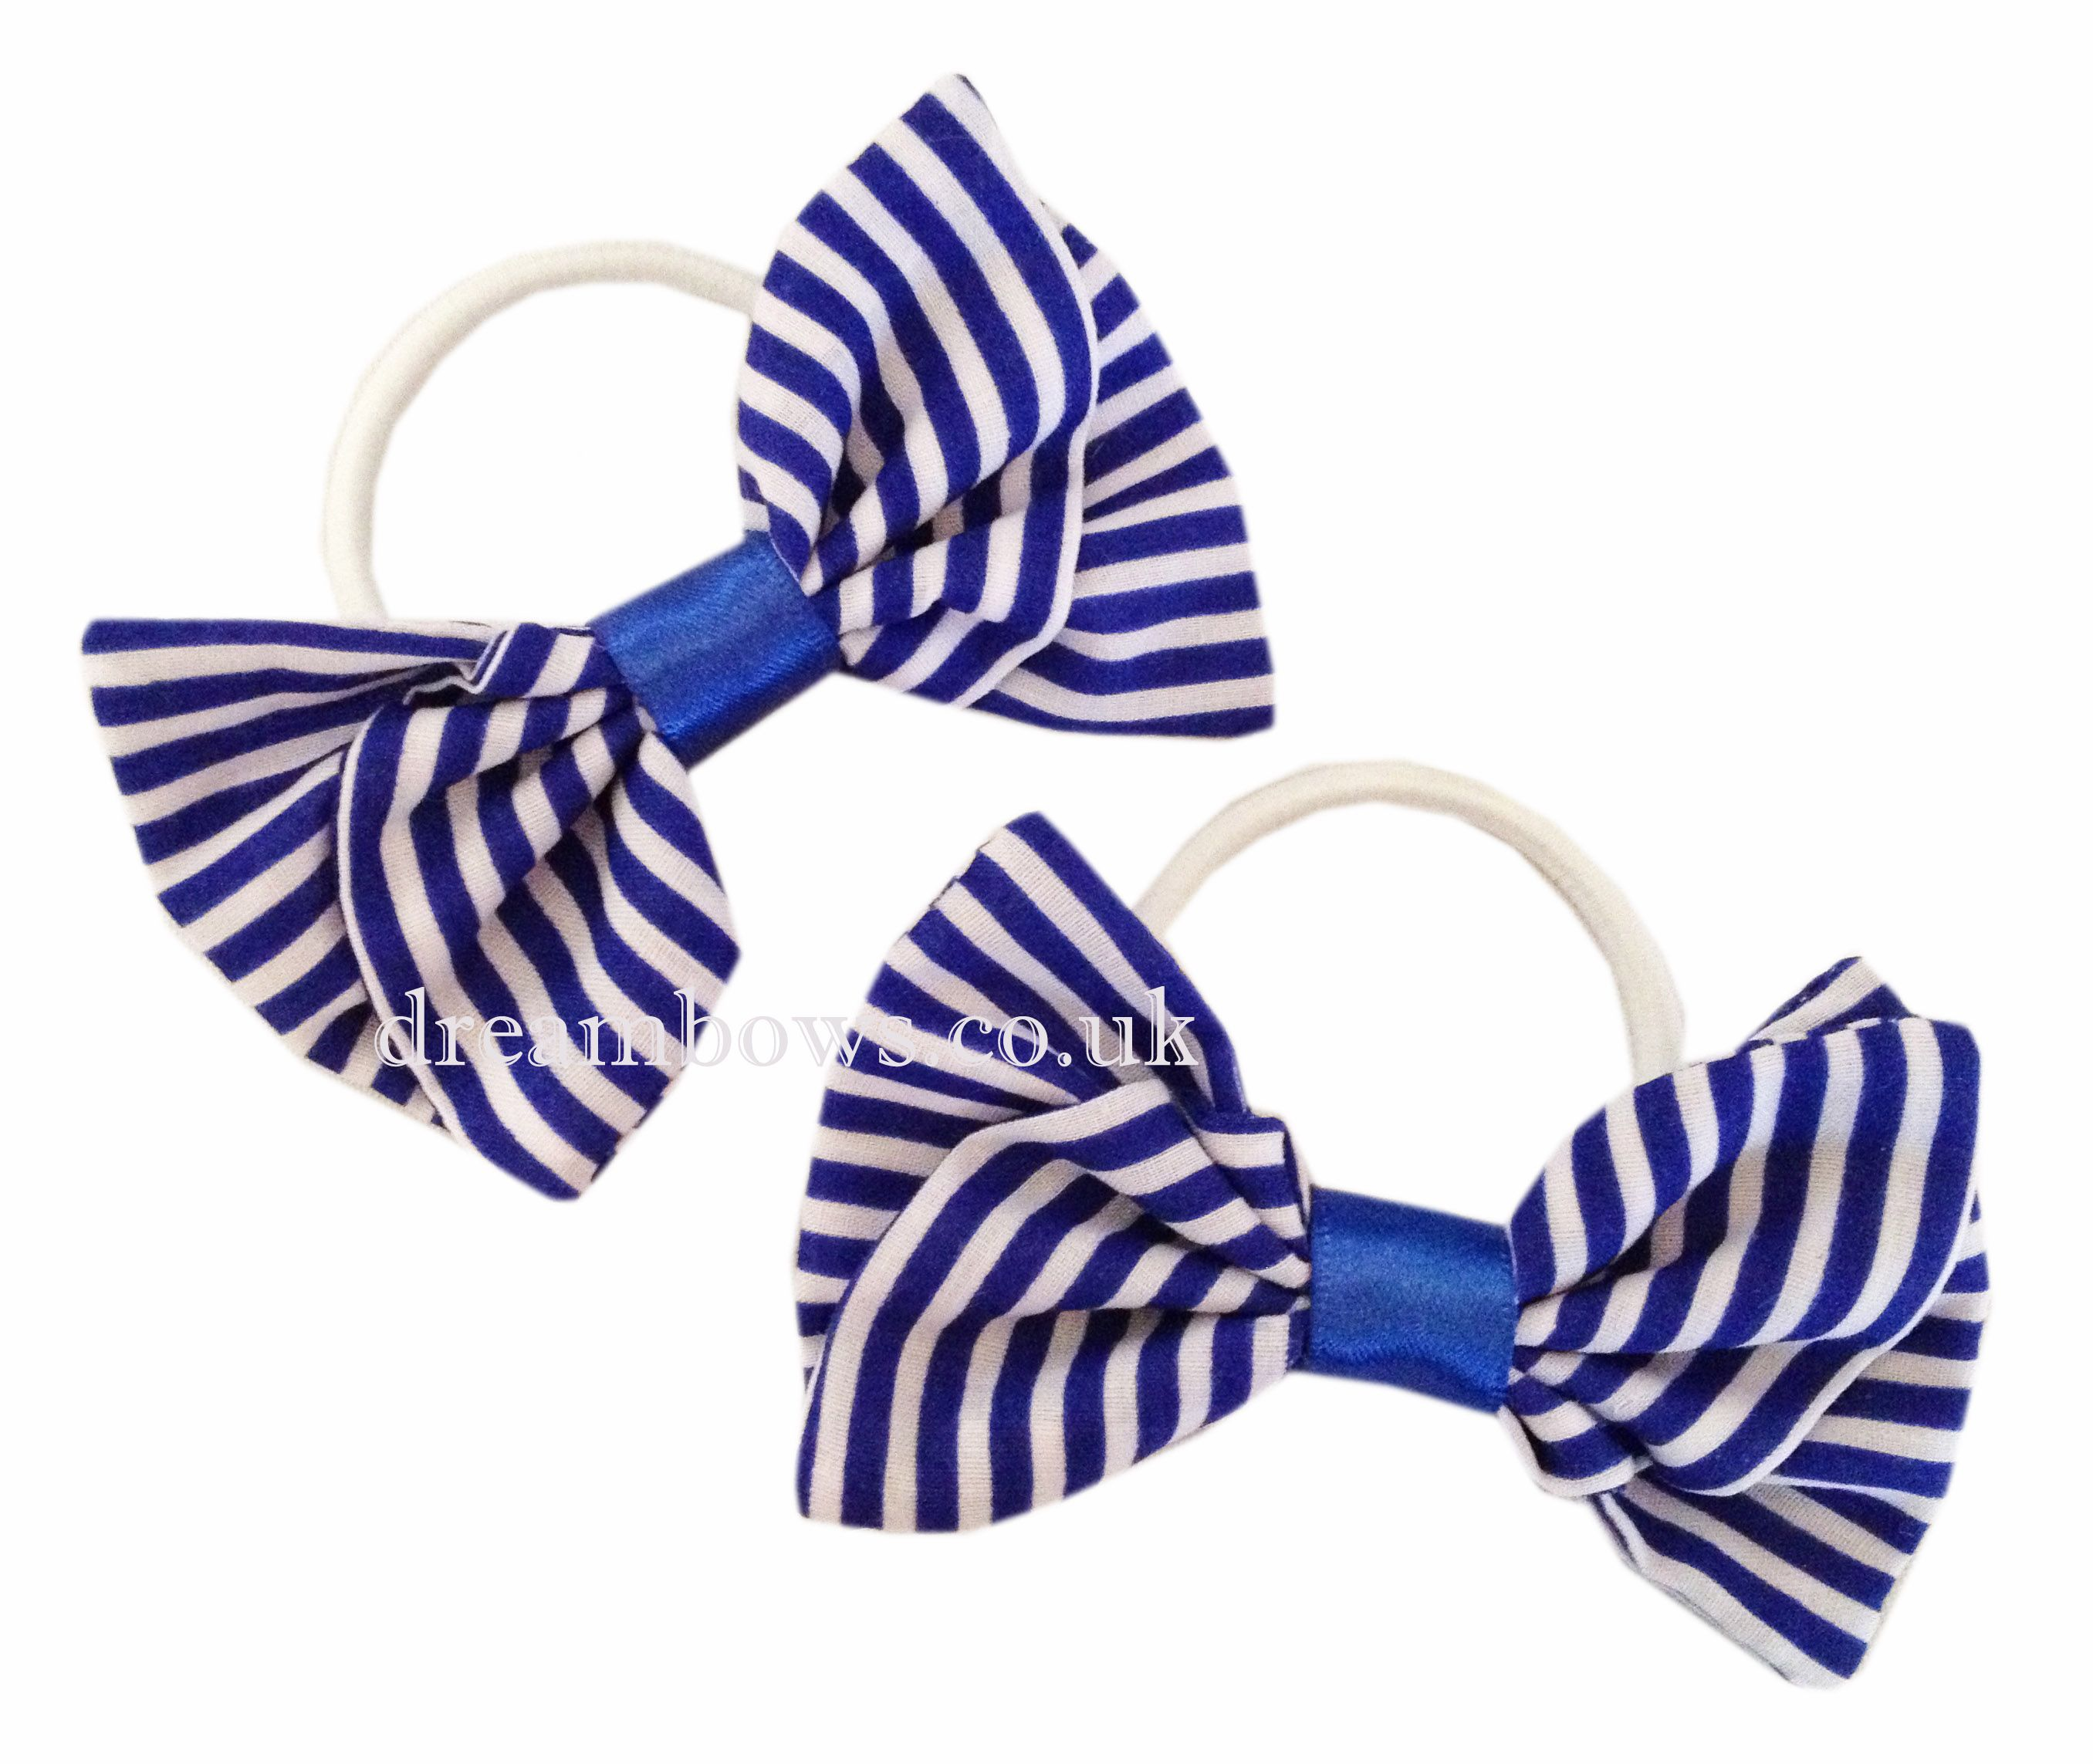 Royal Blue And White Striped Fabric Hair Bows Accessories From Www Dreambows Co